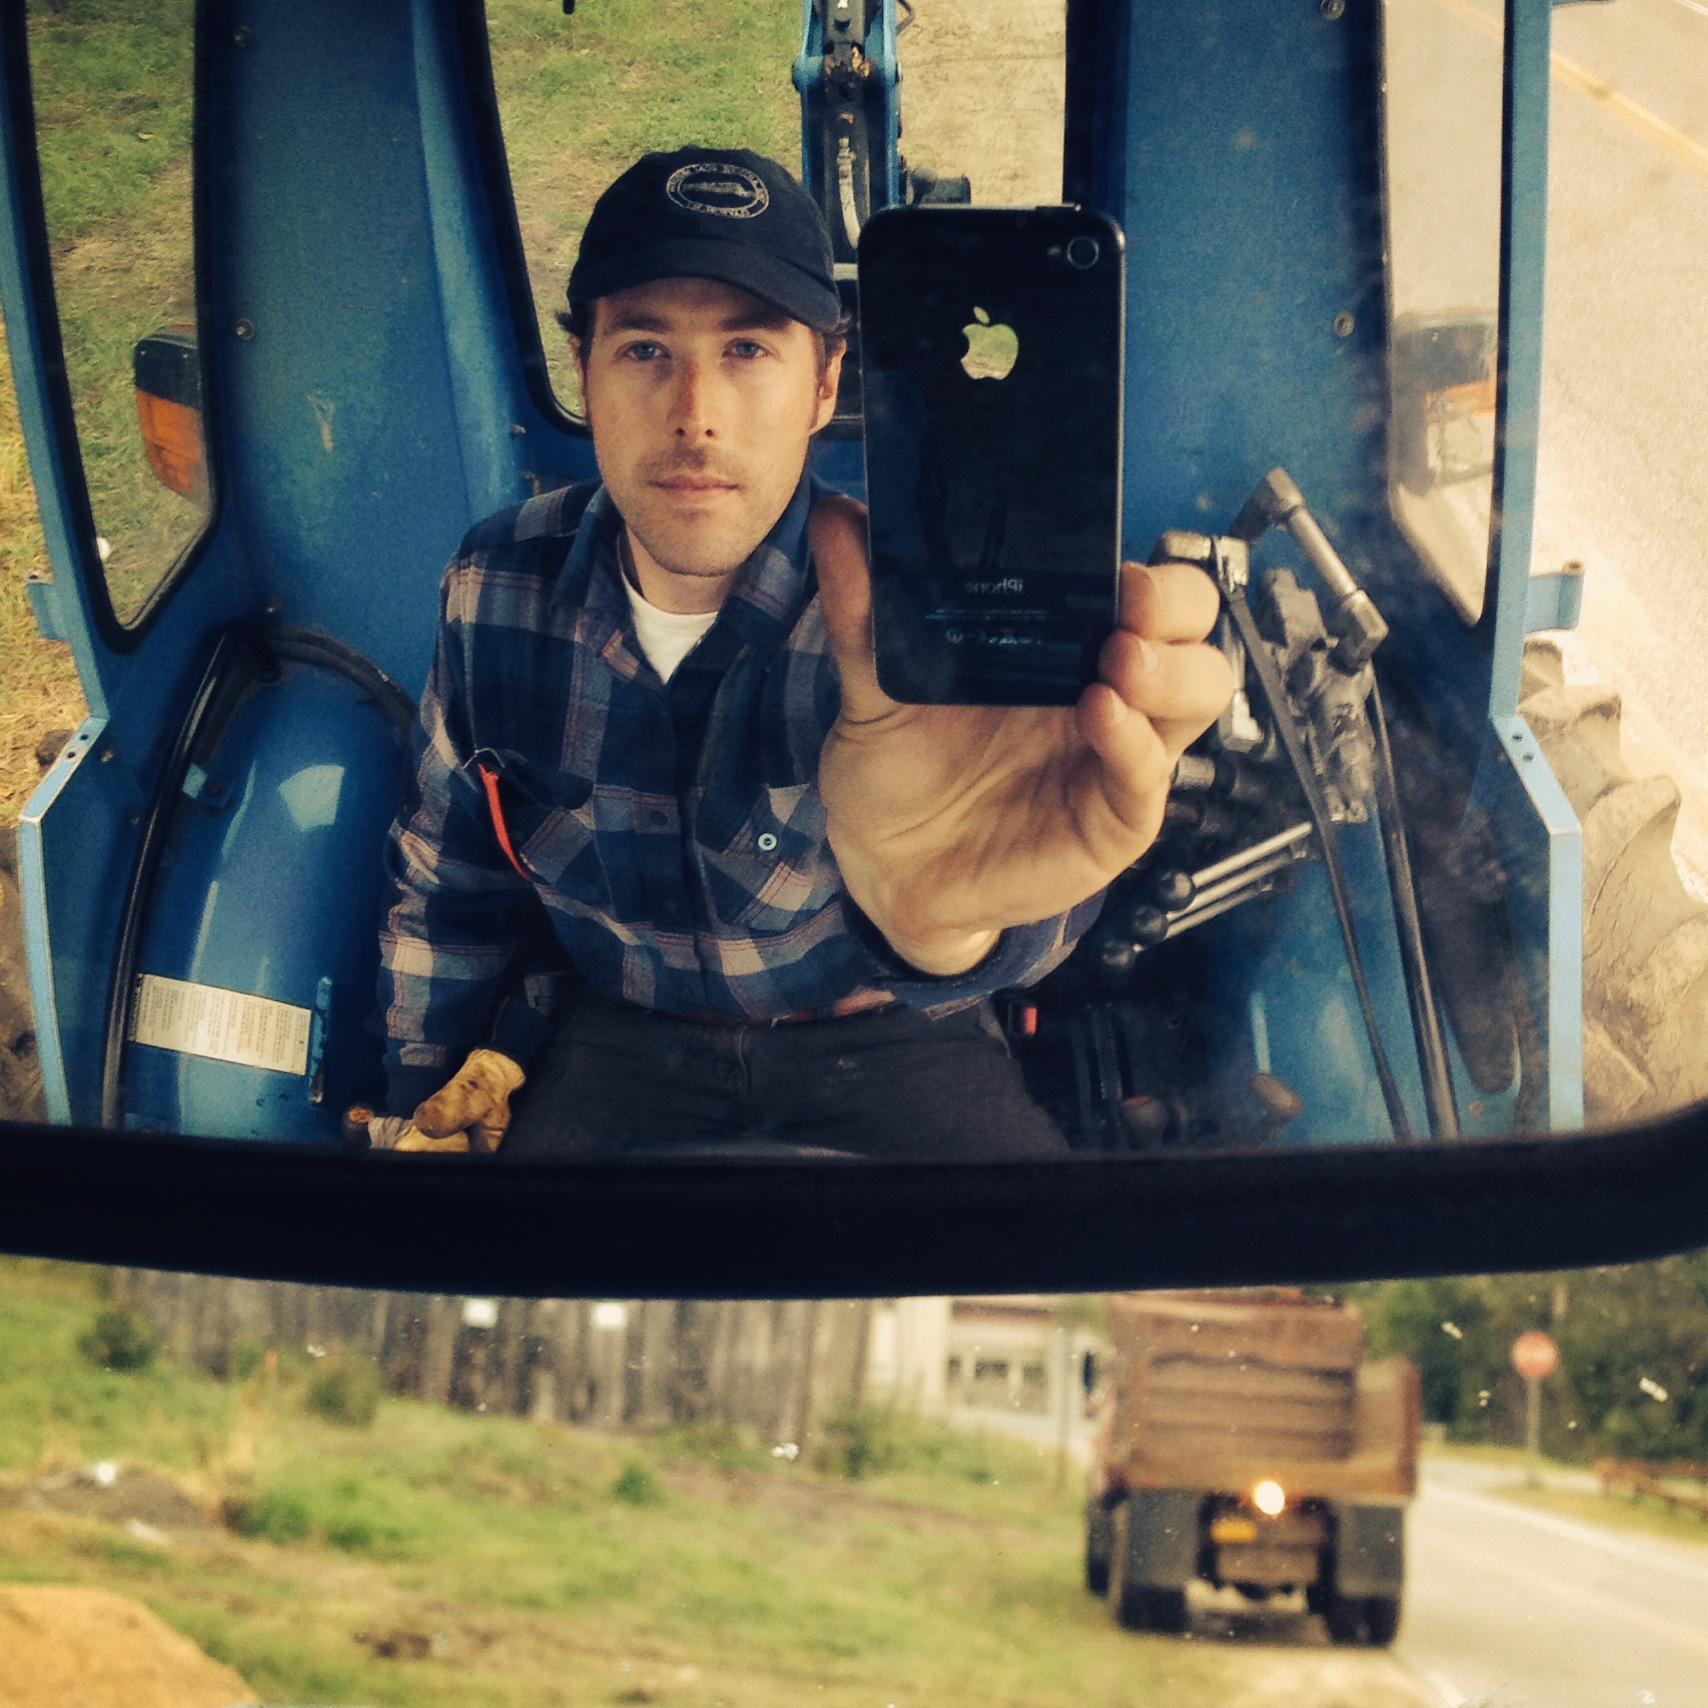 I spent a lot of time driving the tractor.